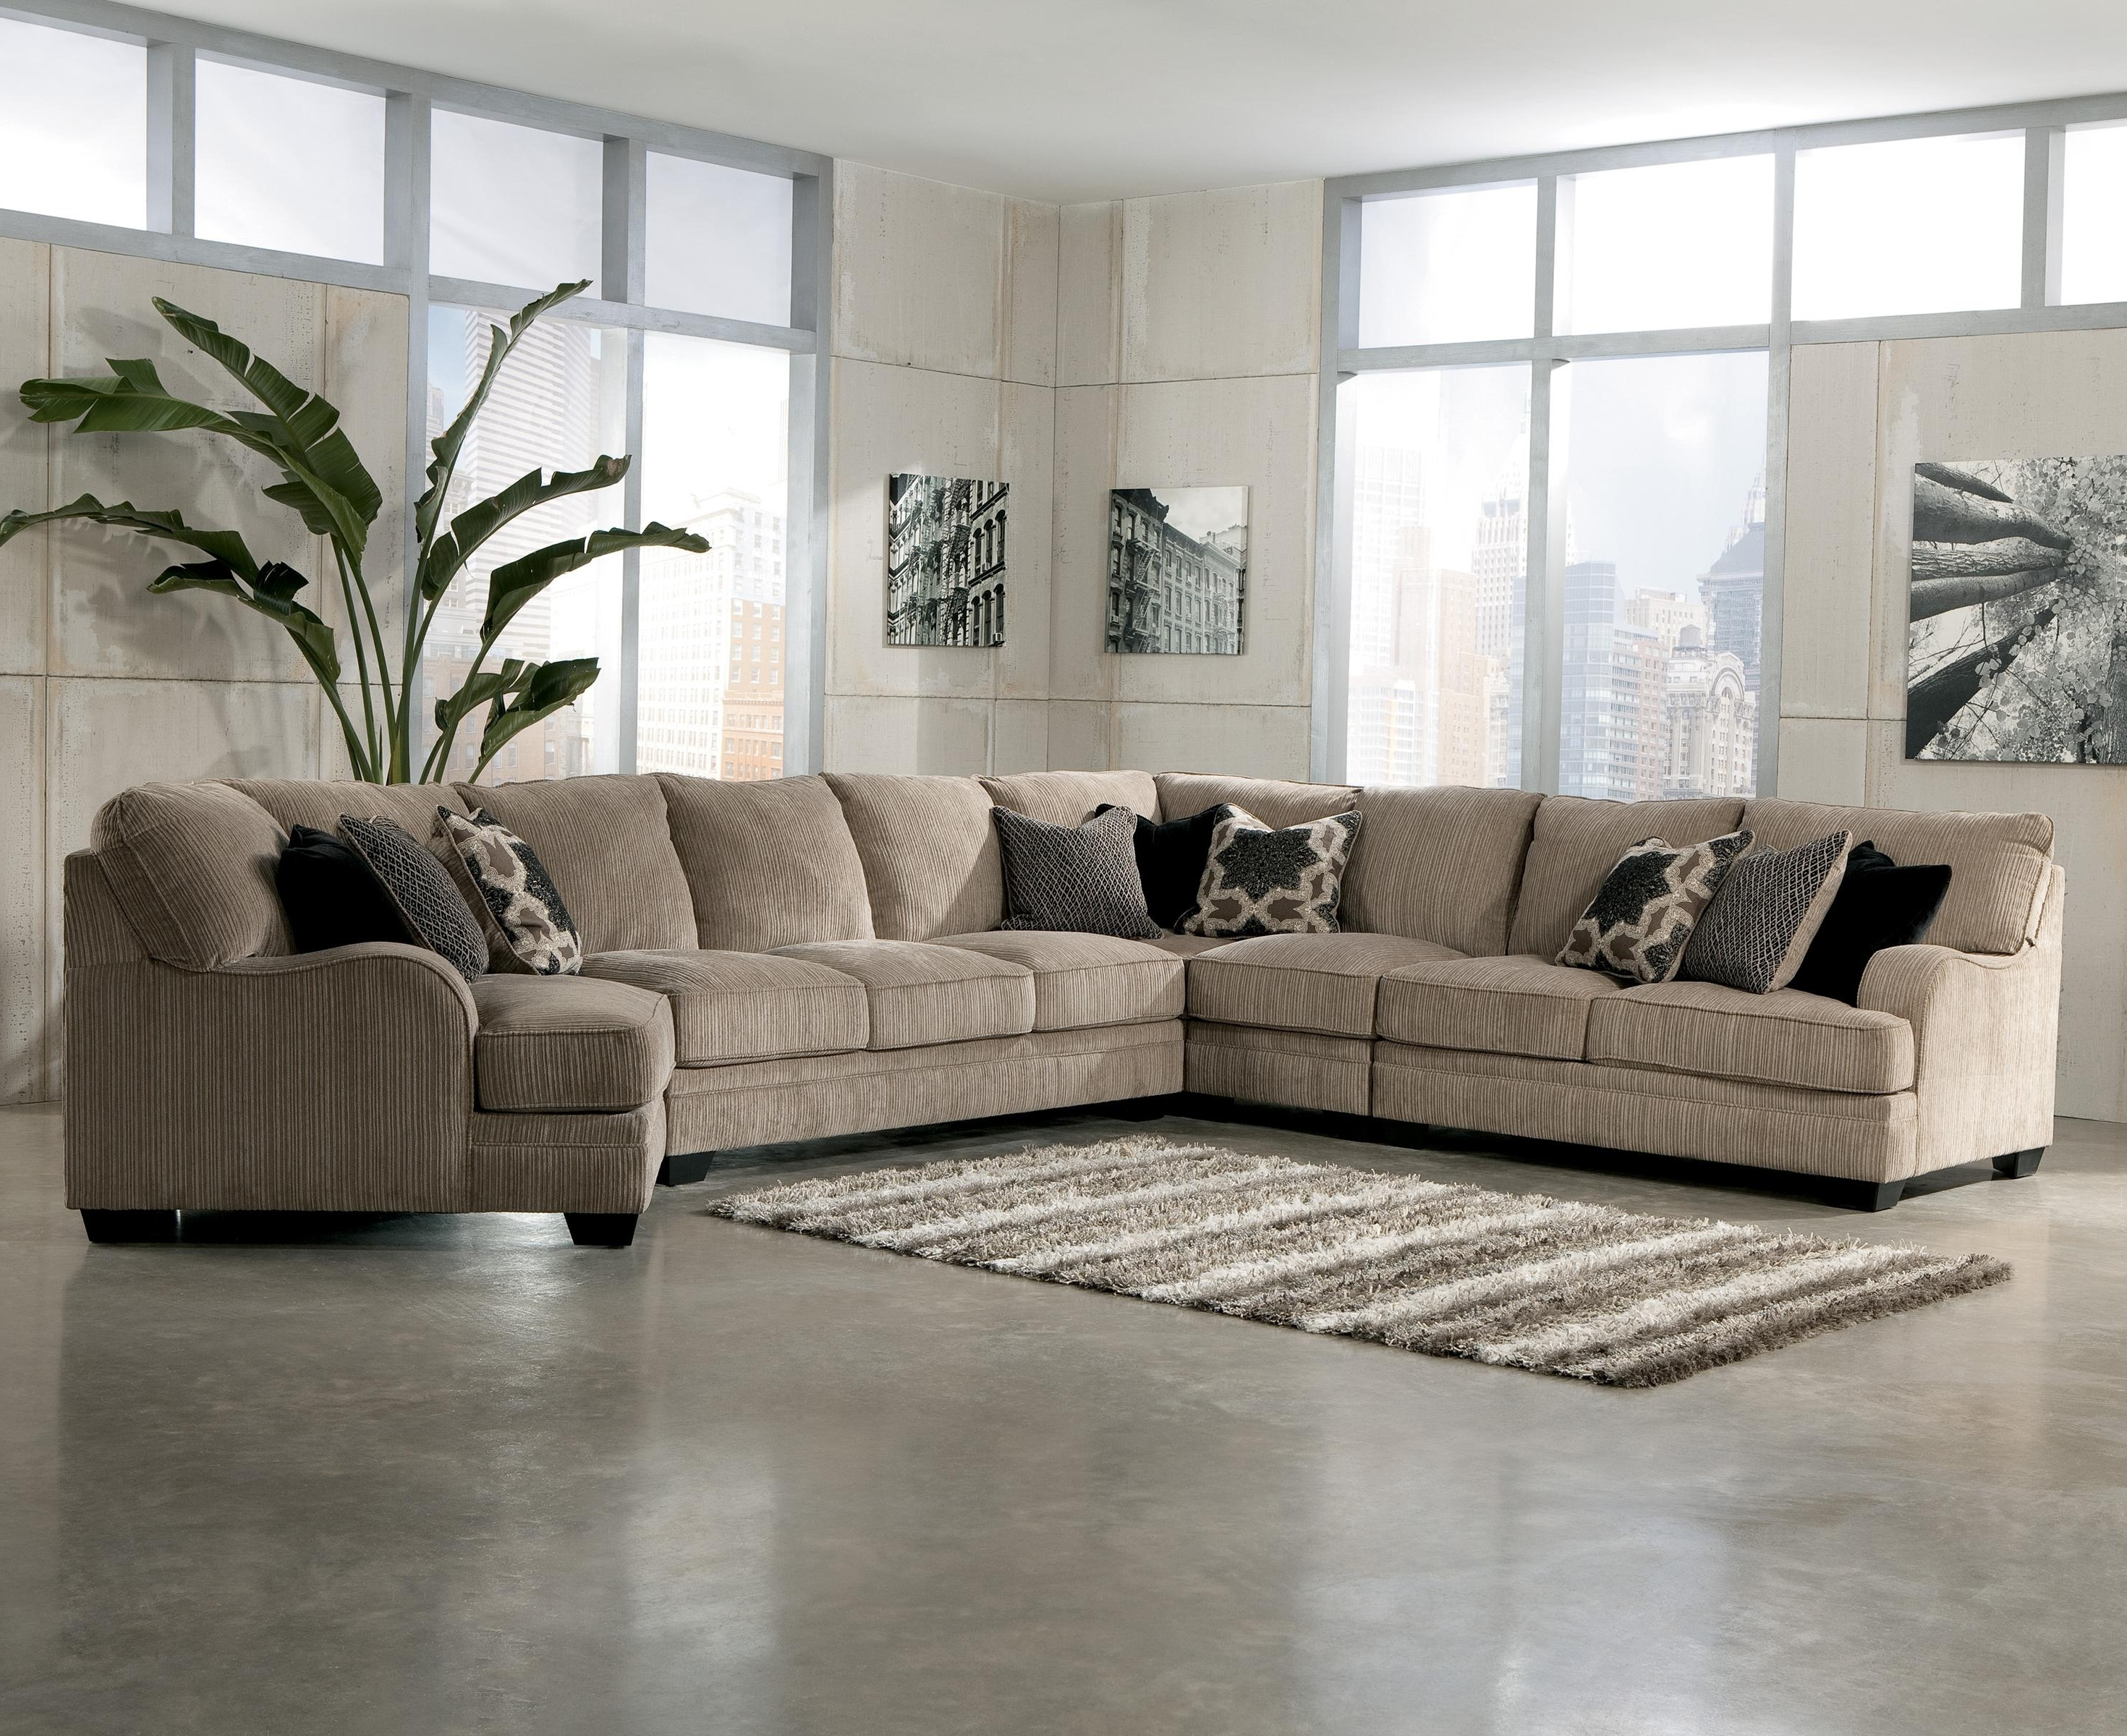 Signature Designashley Katisha – Platinum 5 Piece Sectional Intended For Favorite Sectional Sofas In Greenville Sc (View 7 of 20)